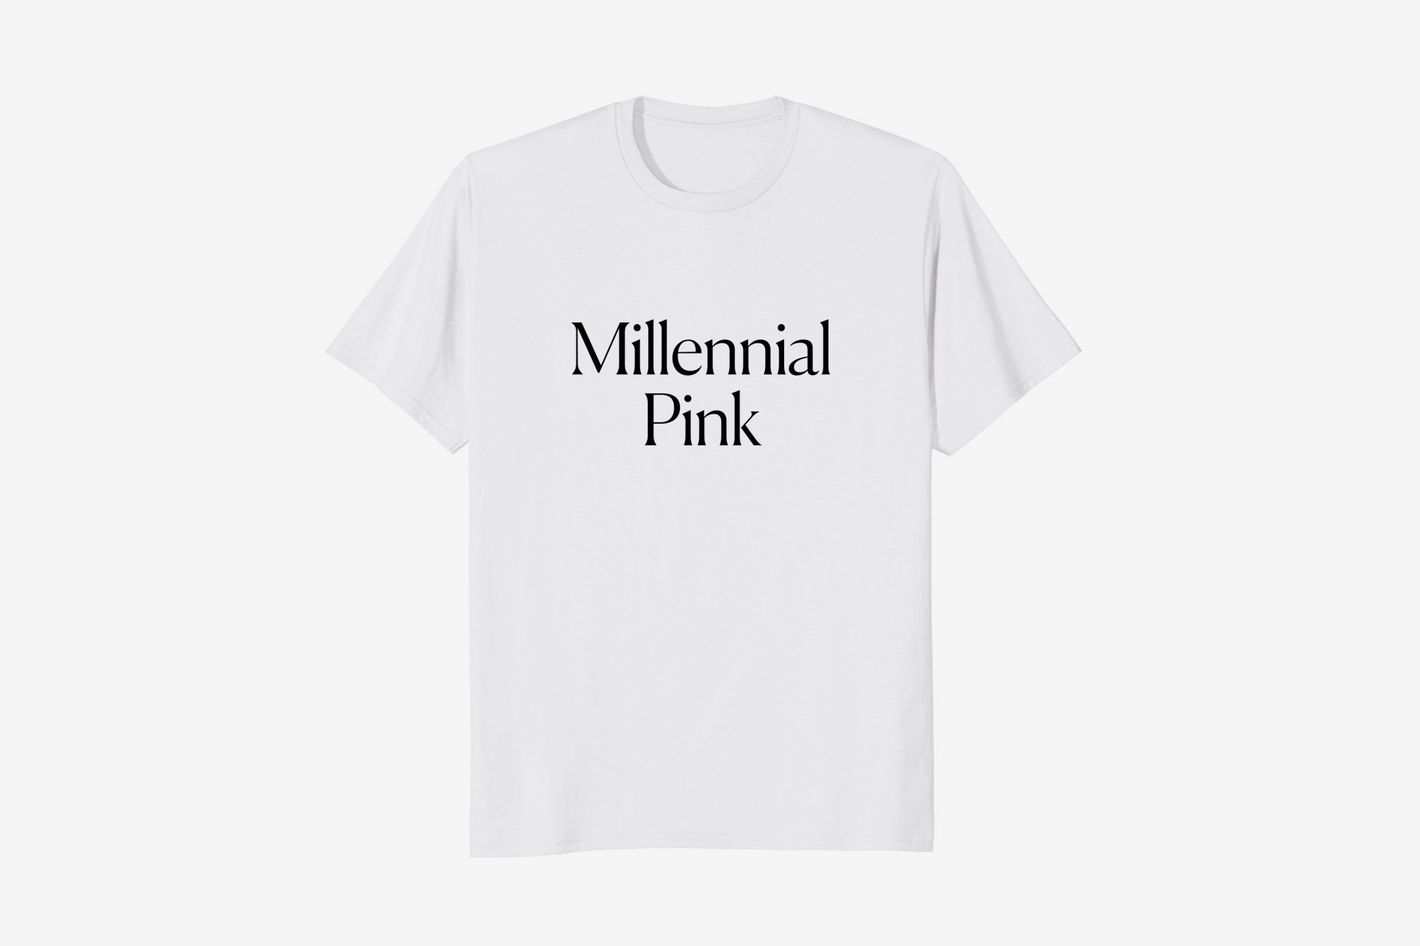 The cut t shirt merchandise 2018 strategist editor picks for Millenial pink gifts